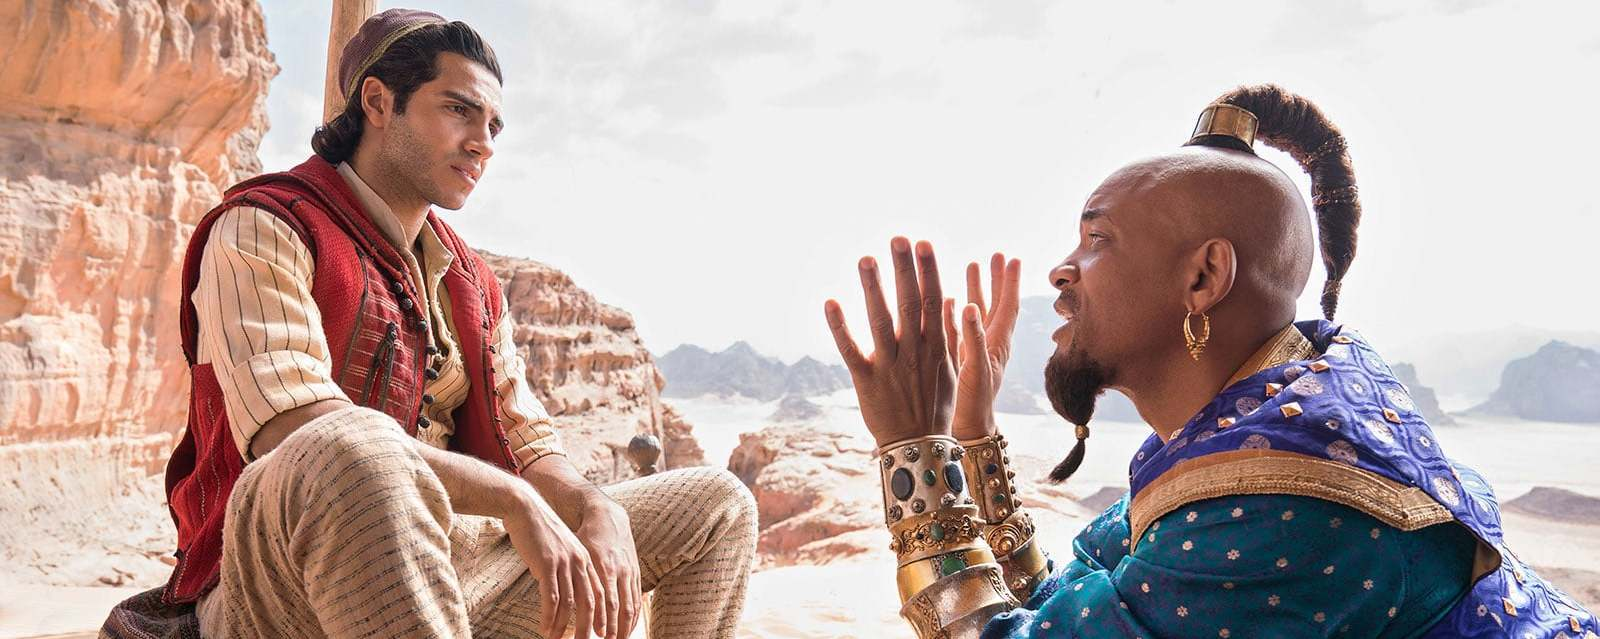 Mena Massoud as Aladdin and Will Smith as Genie in Aladdin